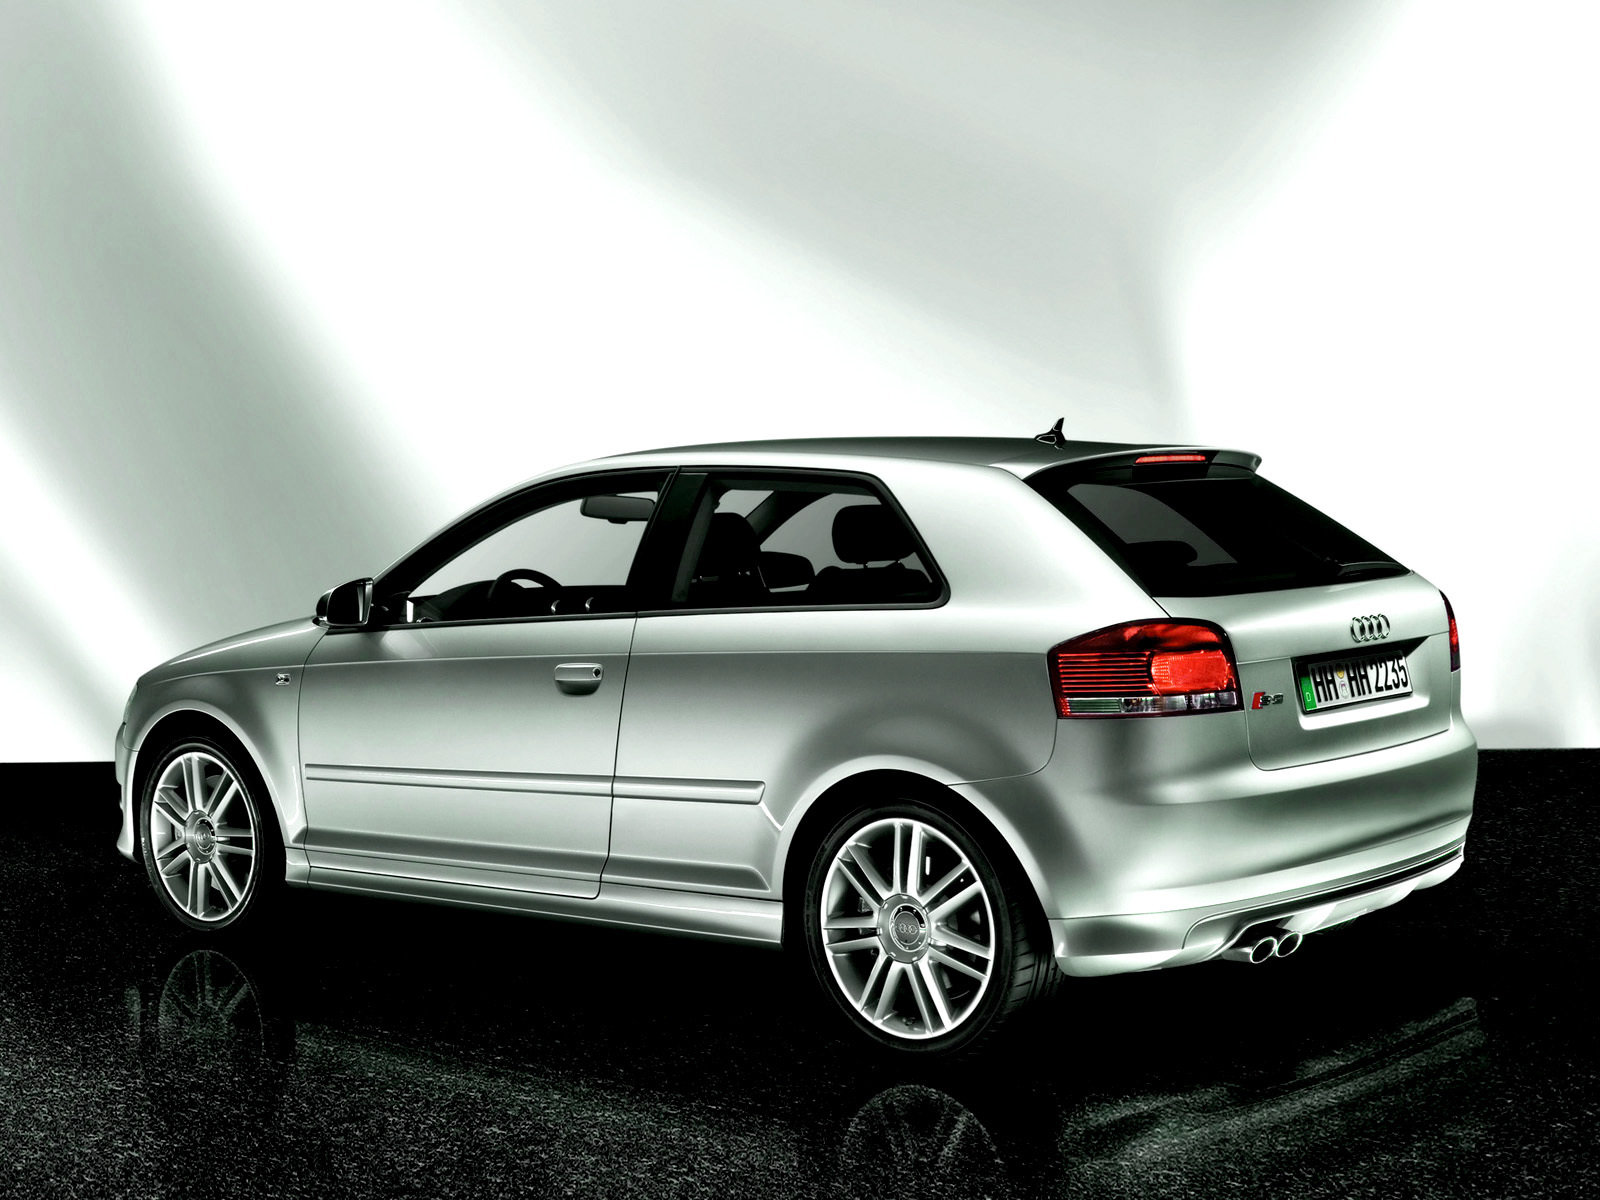 2007 audi s3 picture 90556 car review top speed. Black Bedroom Furniture Sets. Home Design Ideas